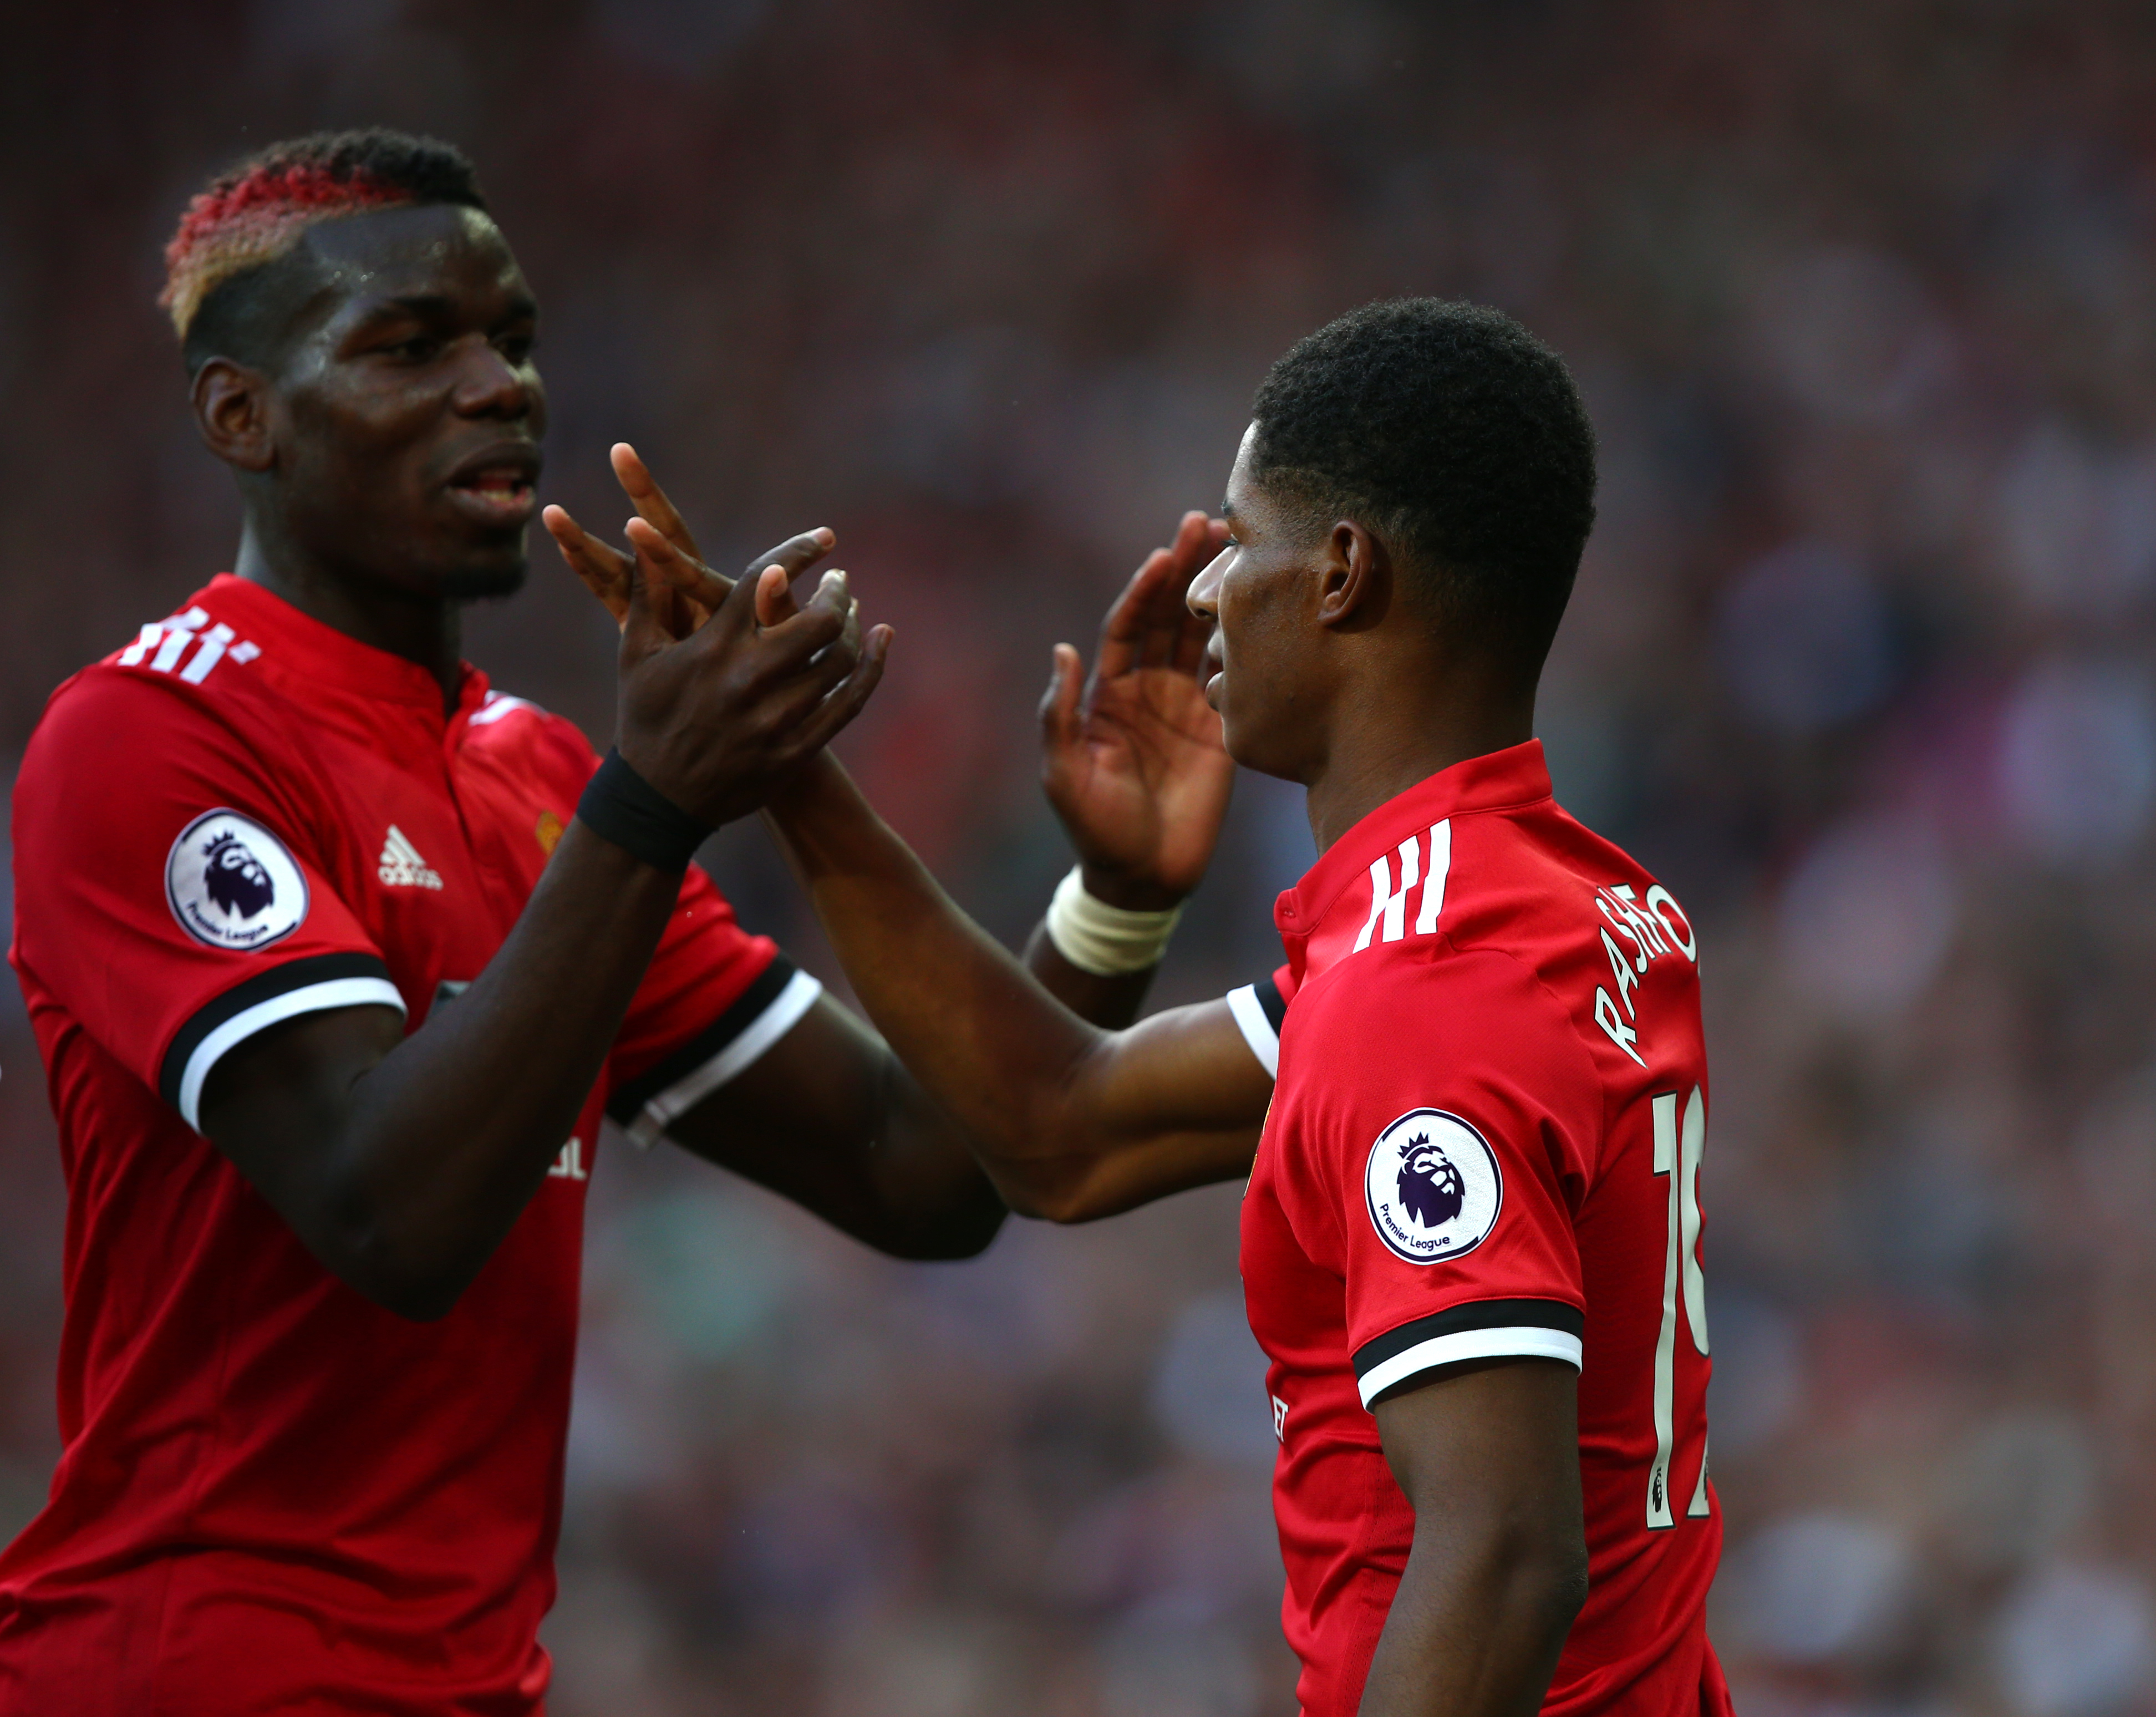 Pogba and Rashford's resurgence has been part of the catalyst for United's change in fortunes. Image: PA Images